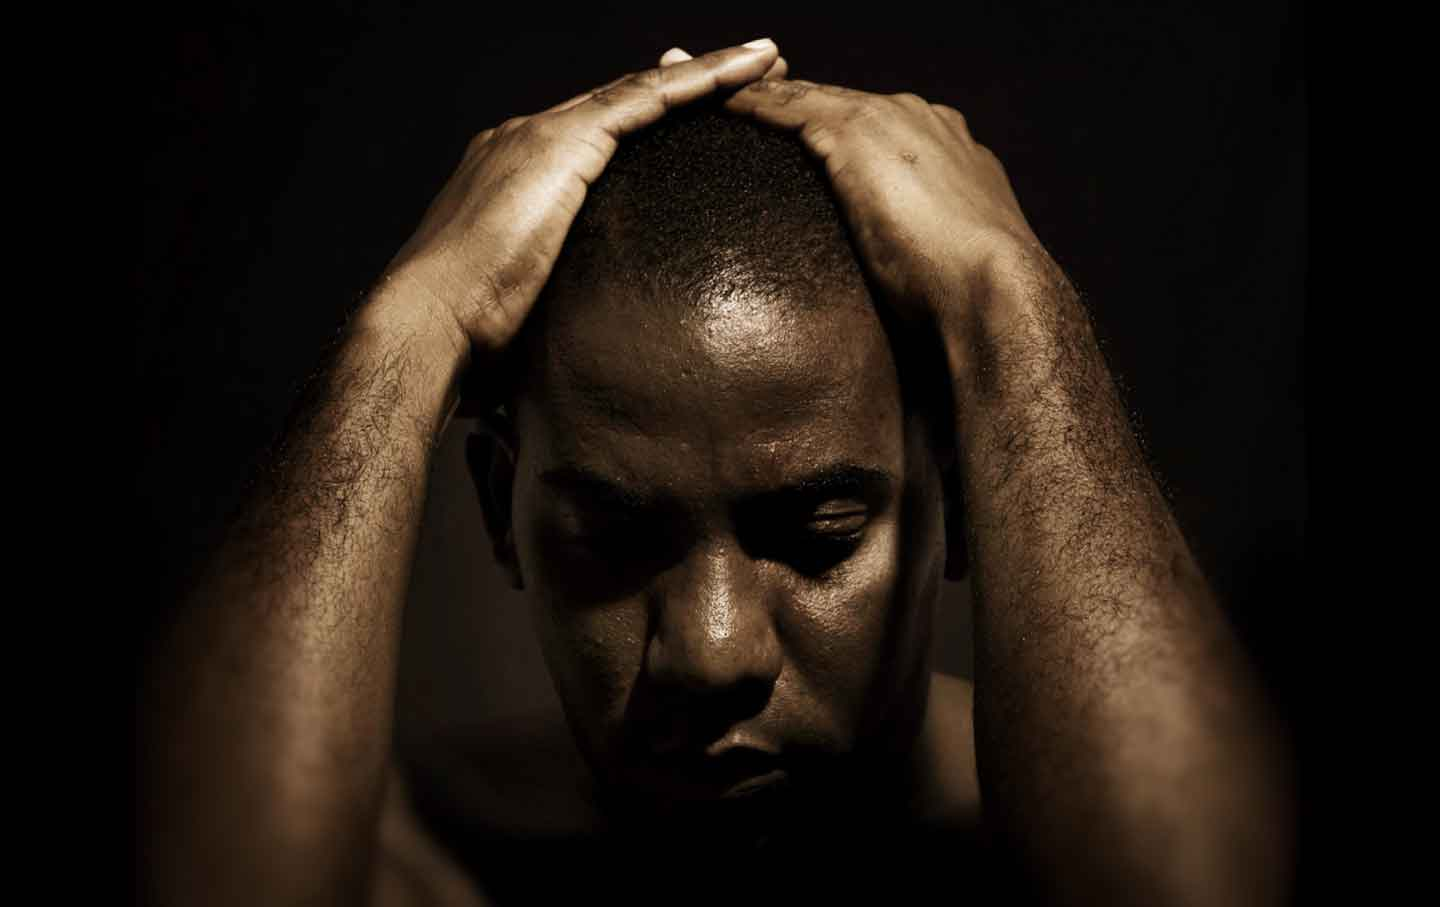 black men in america American black men have historically been depicted as violent, and the racist fear that has resulted means they're actually constantly at risk and deeply fragile.